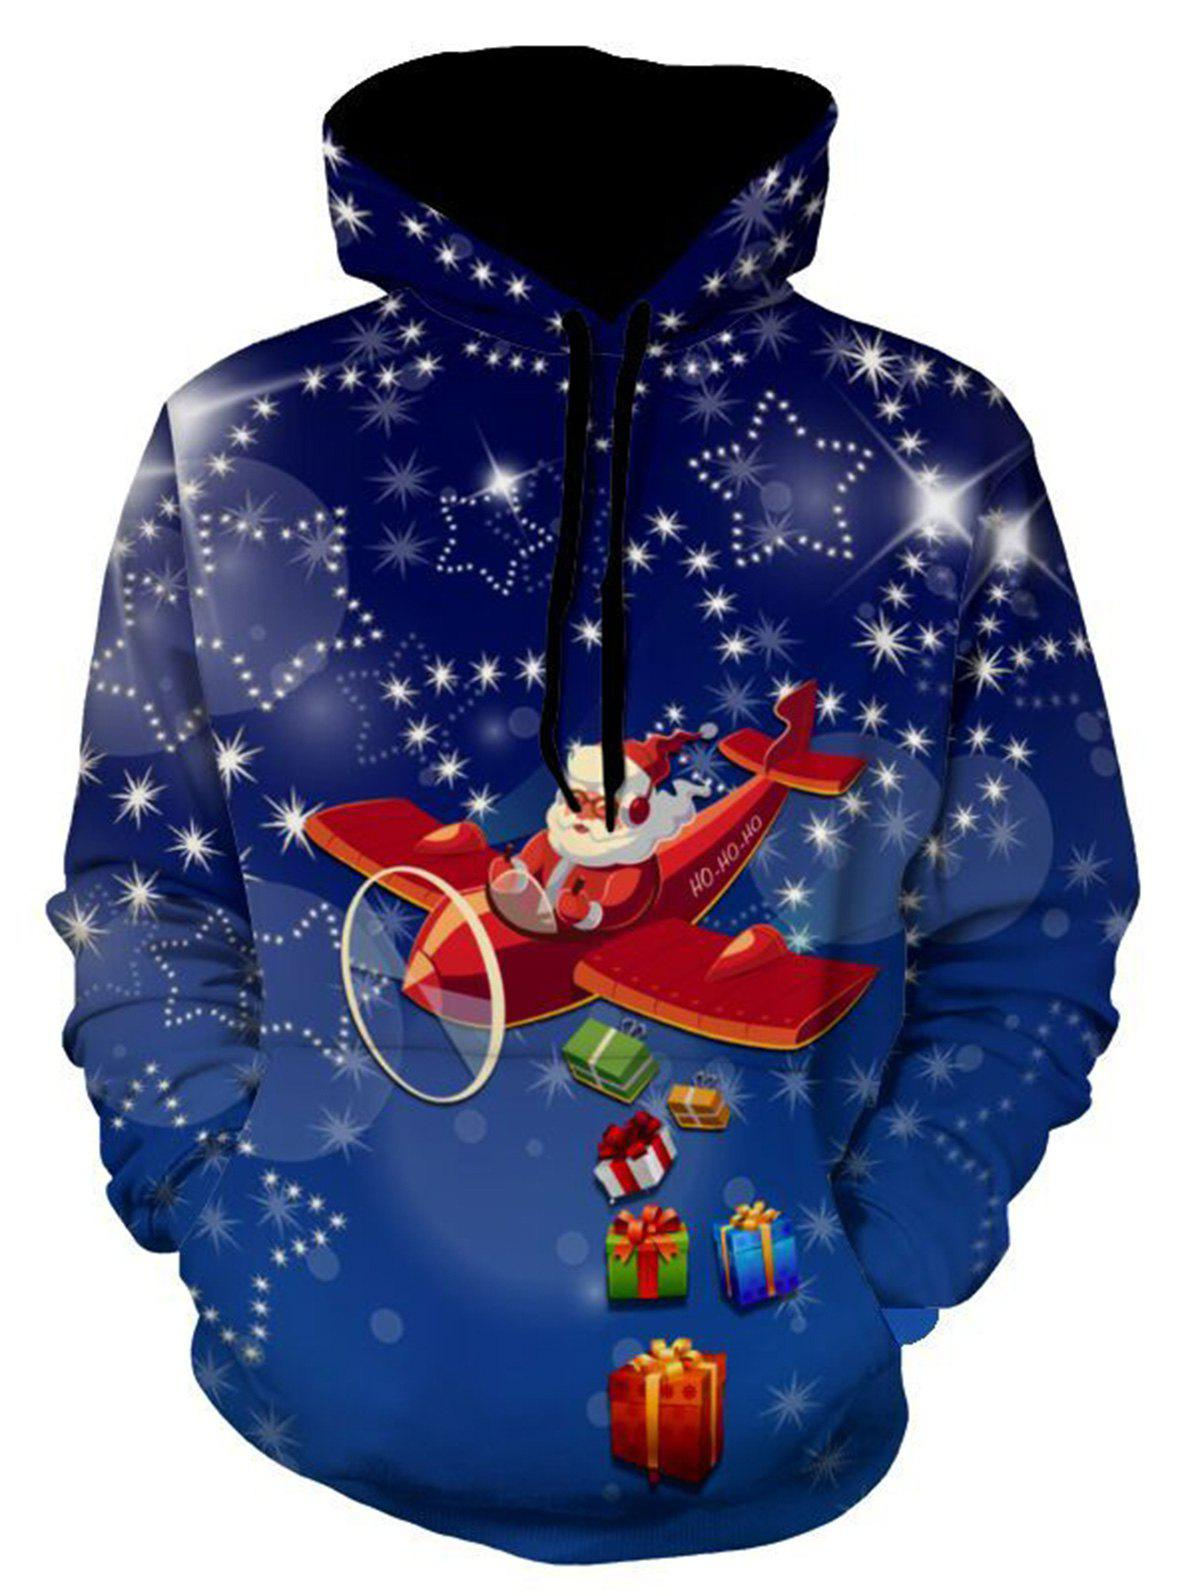 Santa Clause Christmas Gifts Printed HoodieMEN<br><br>Size: 3XL; Color: BLUE; Material: Polyester,Spandex; Clothes Type: Hoodie; Shirt Length: Regular; Sleeve Length: Full; Style: Fashion; Patterns: Cartoon,Print,Stars; Thickness: Regular; Occasion: Casual,Daily Use,Going Out; Weight: 0.5400kg; Package Contents: 1 x Hoodie;